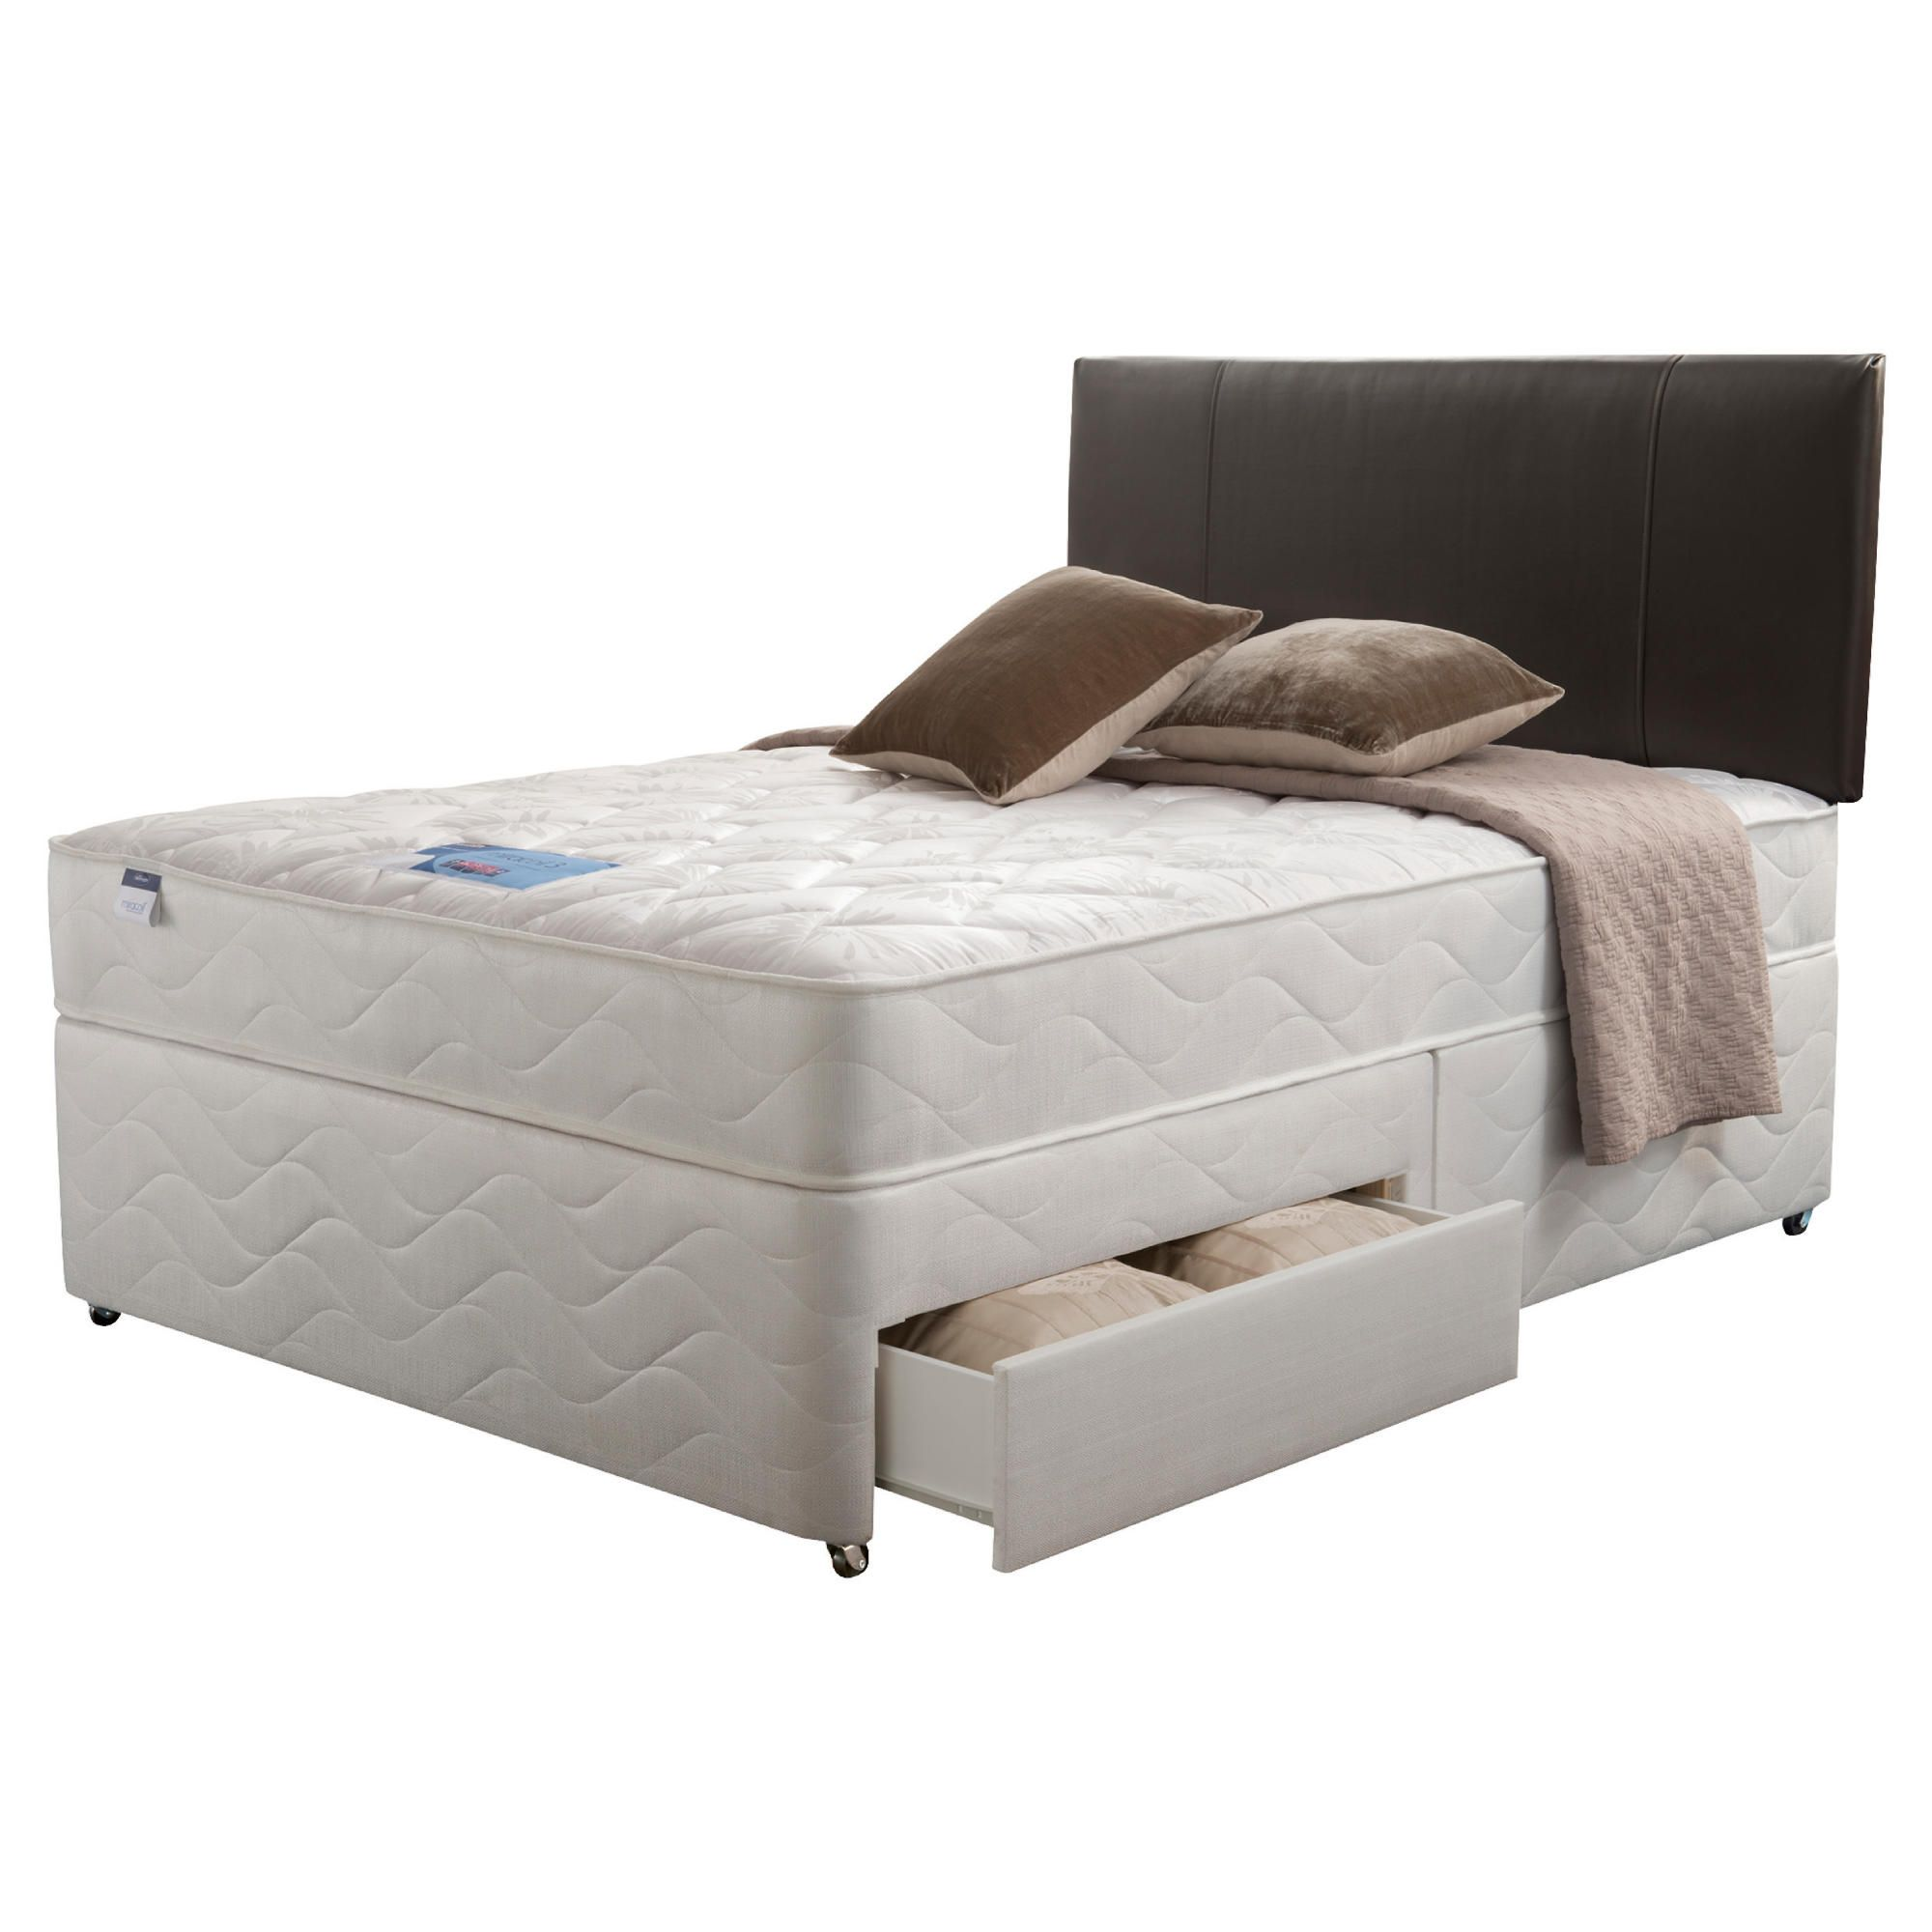 Silentnight Richmond King 2 drawer divan set at Tesco Direct